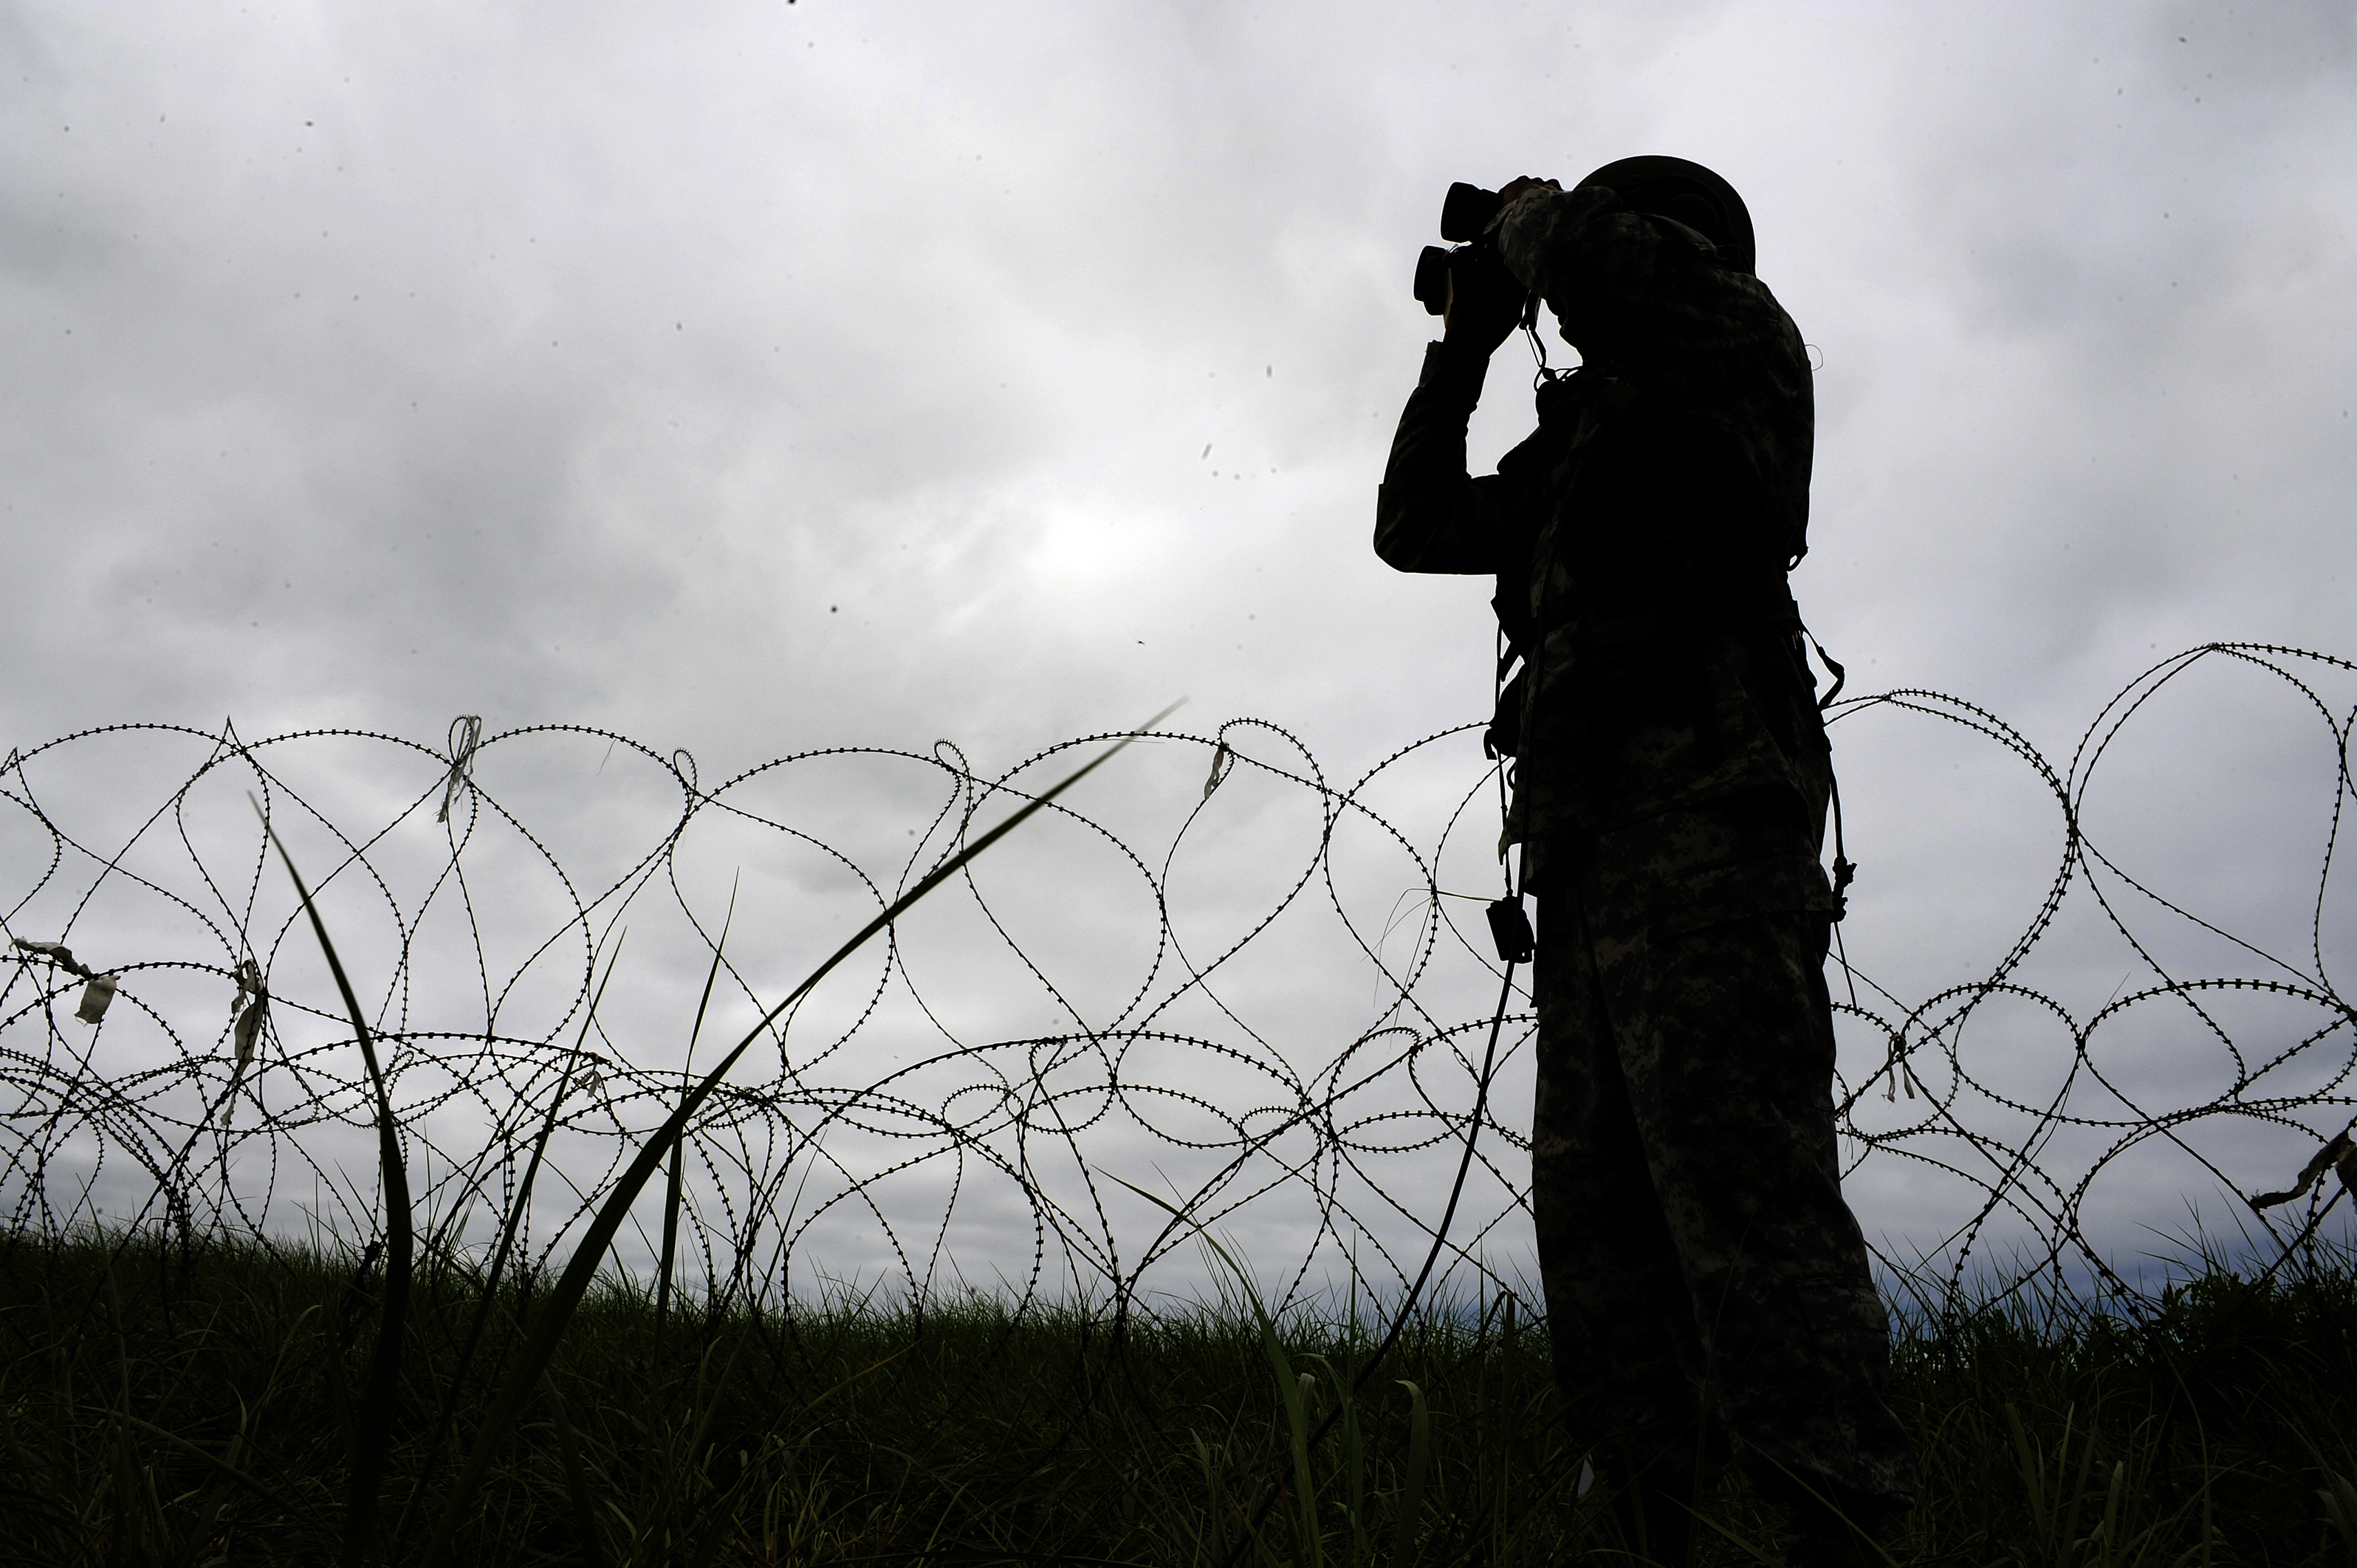 b1414a6d6509 File Flickr - The U.S. Army - Searching for opposing forces.jpg ...